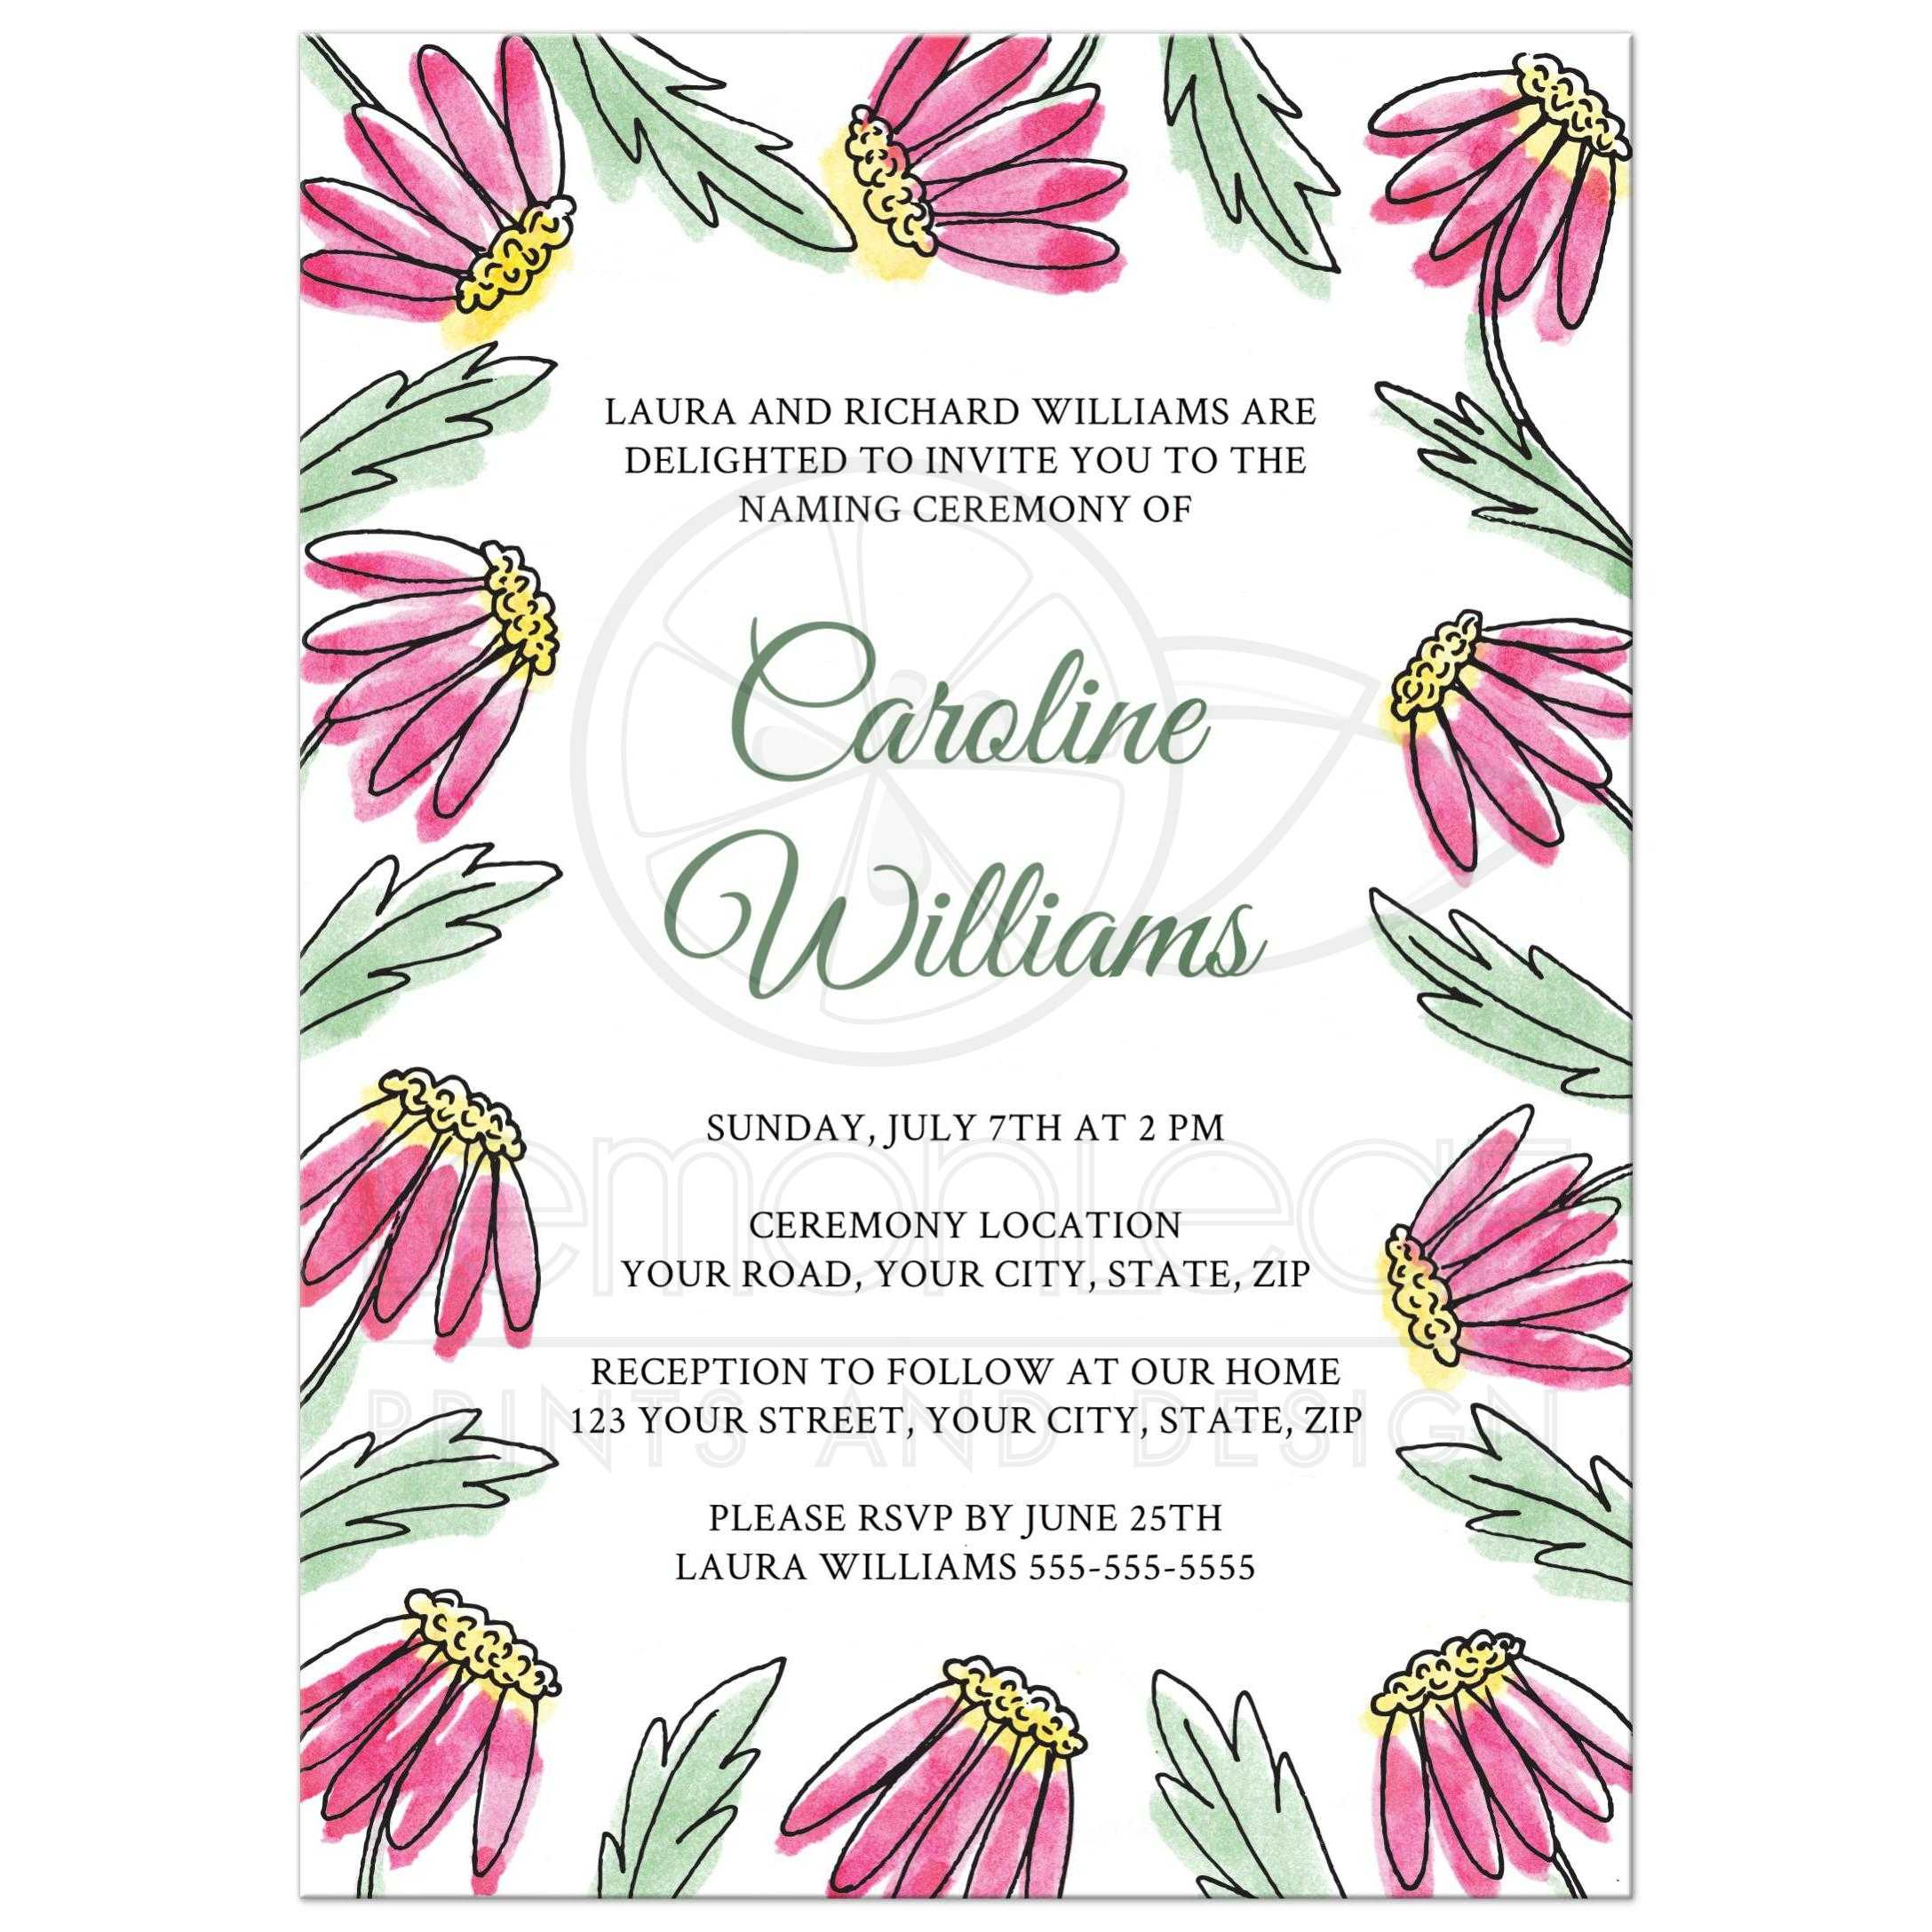 Sweet name givingnaming ceremony invitation with pink watercolor – Naming Ceremony Invitation